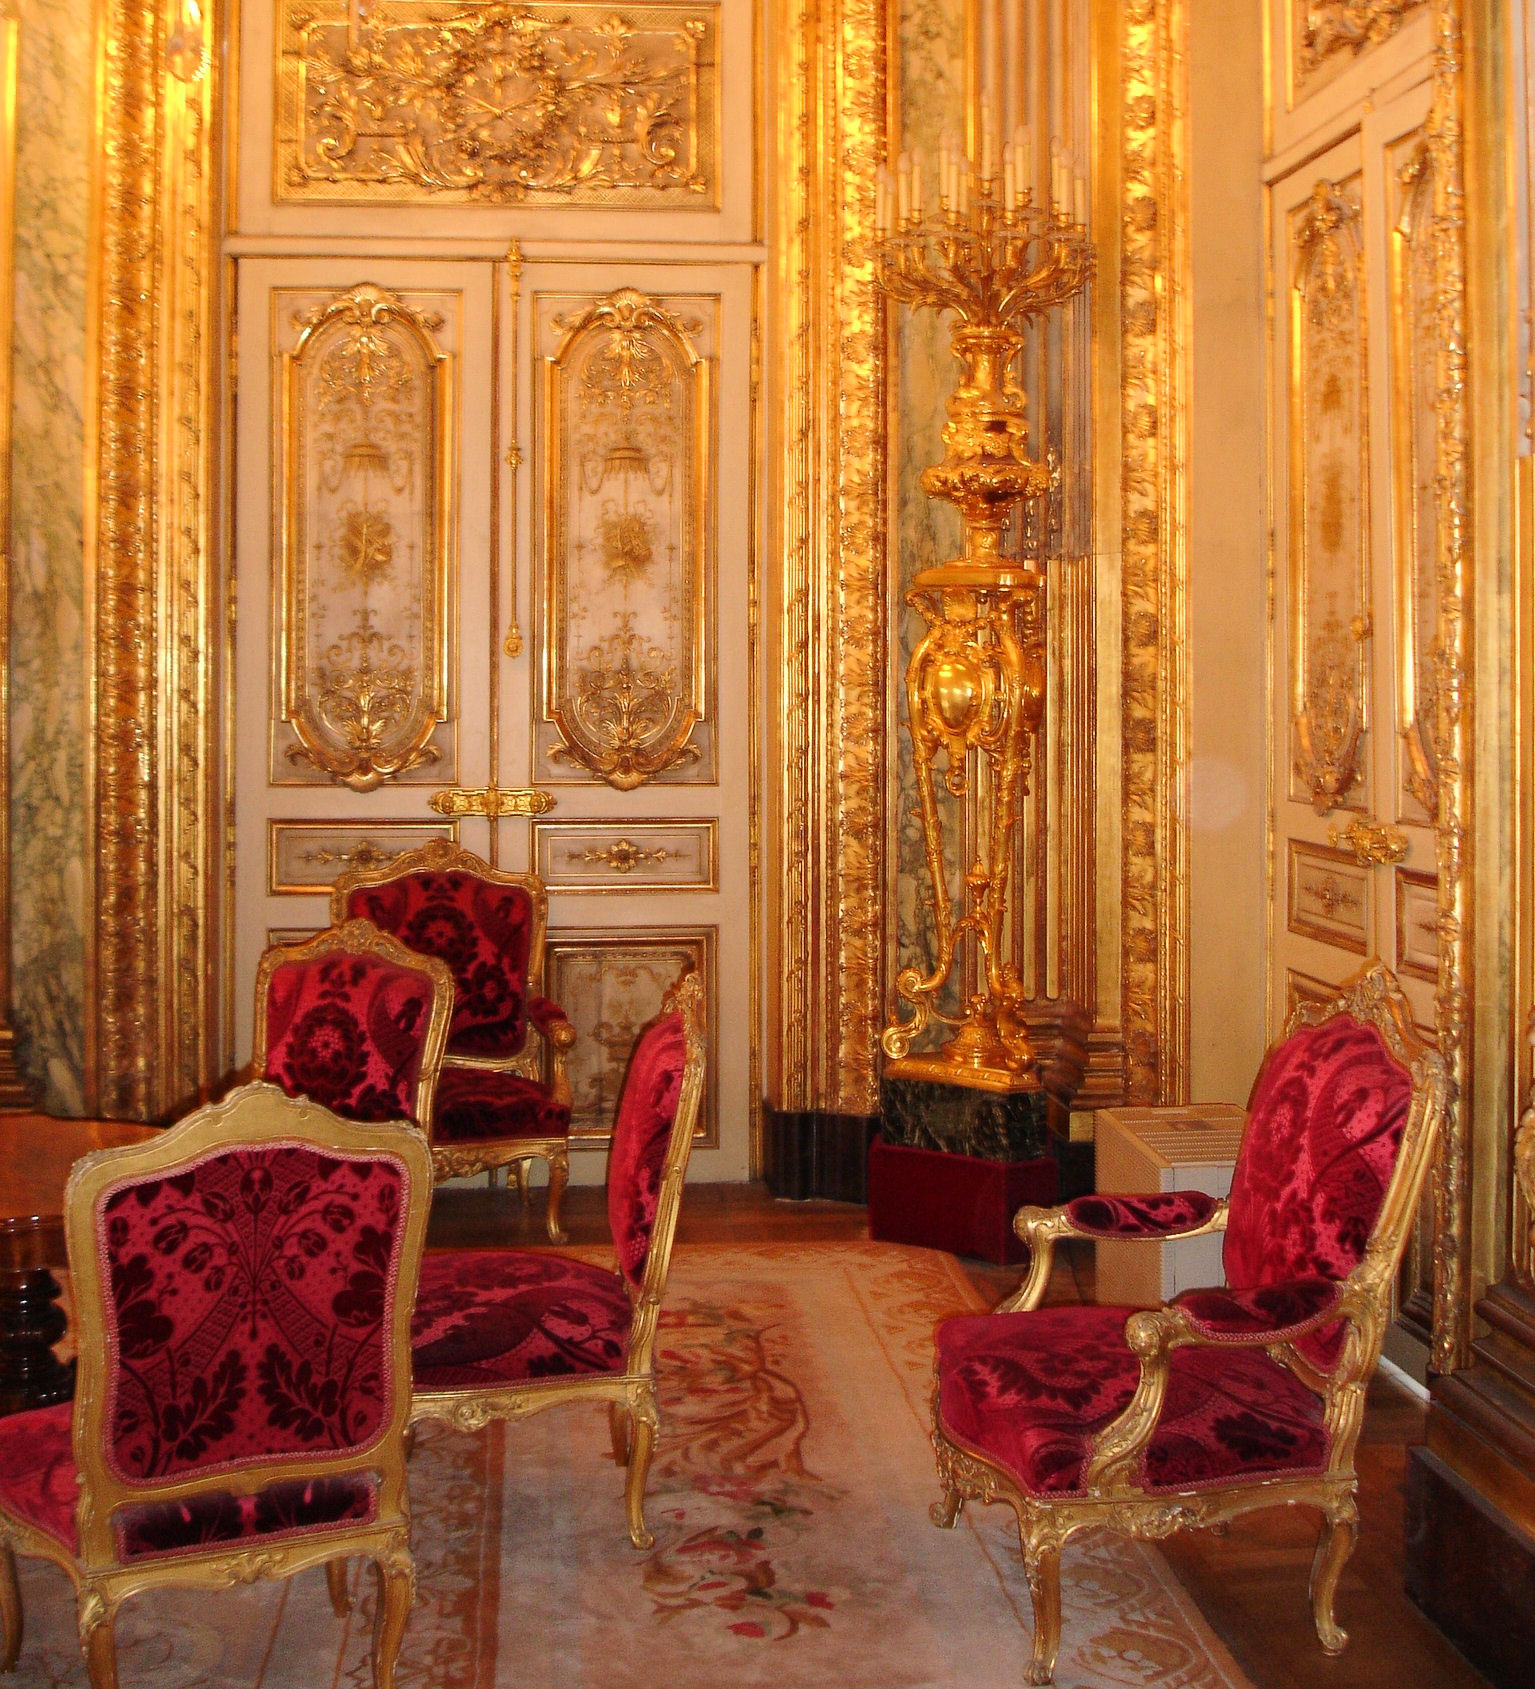 File louvre appartements napoleon iii grand for Salon du design paris